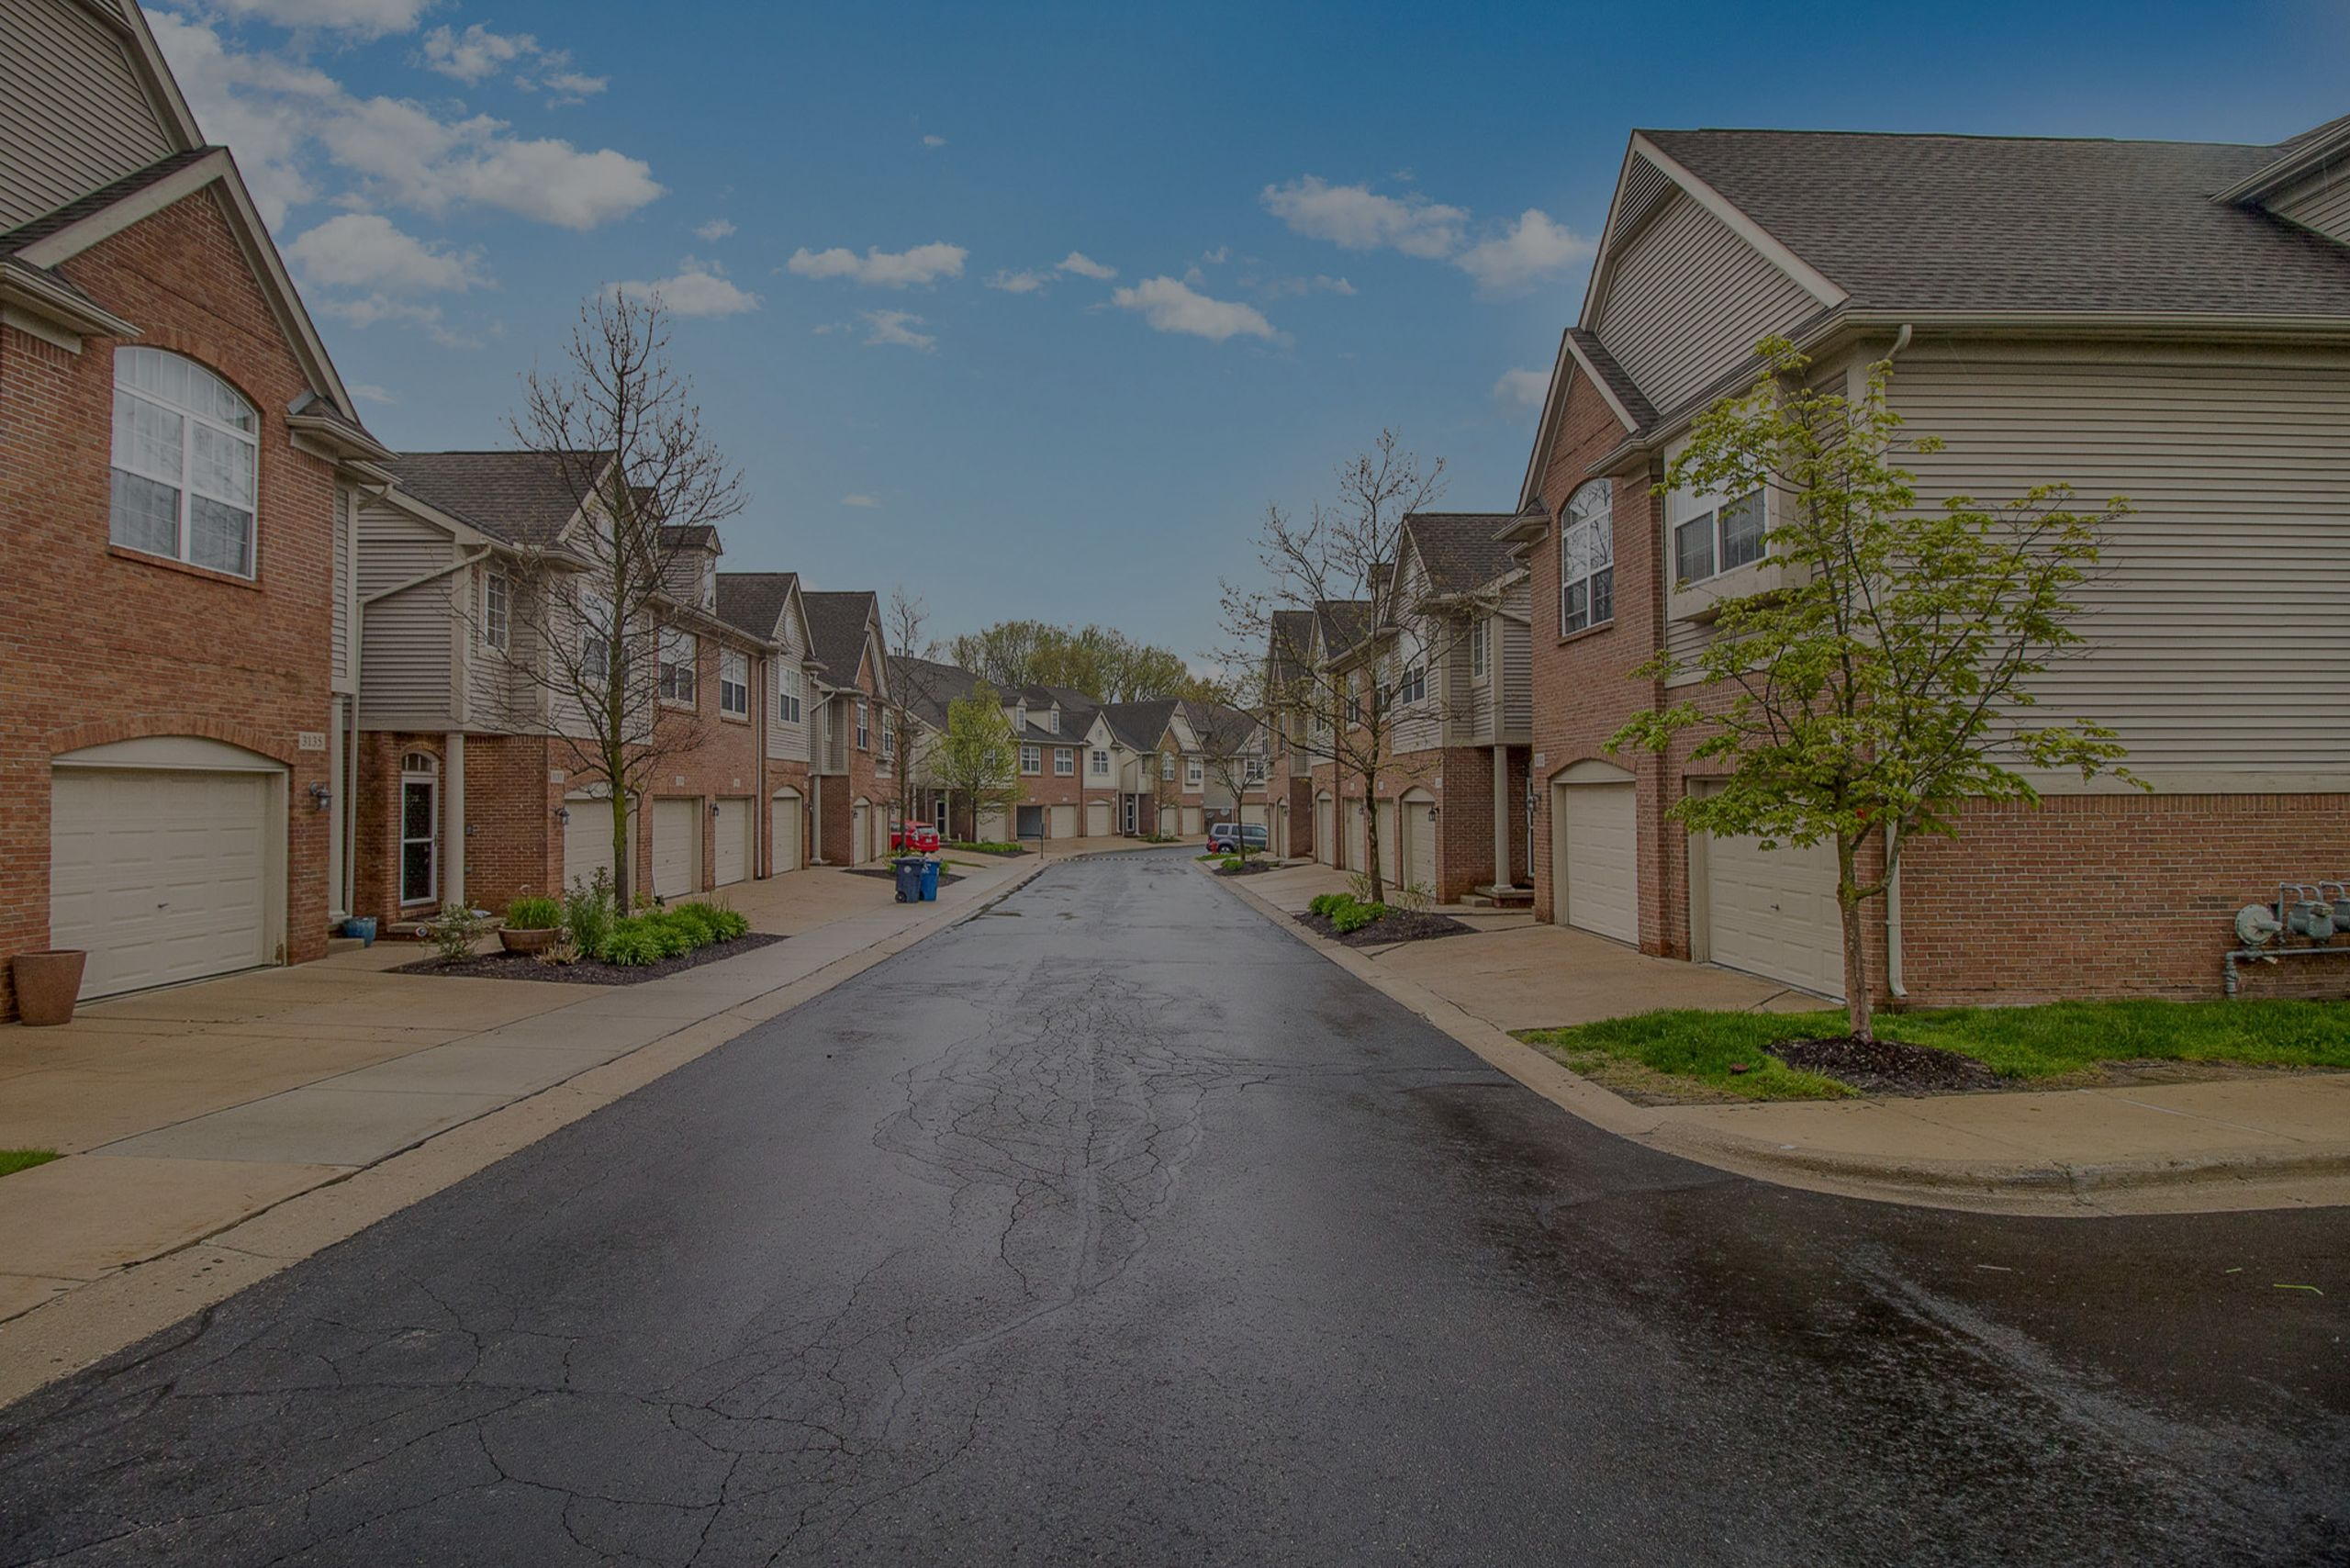 Home Buying and Selling During the Pandemic: What You Need to Know